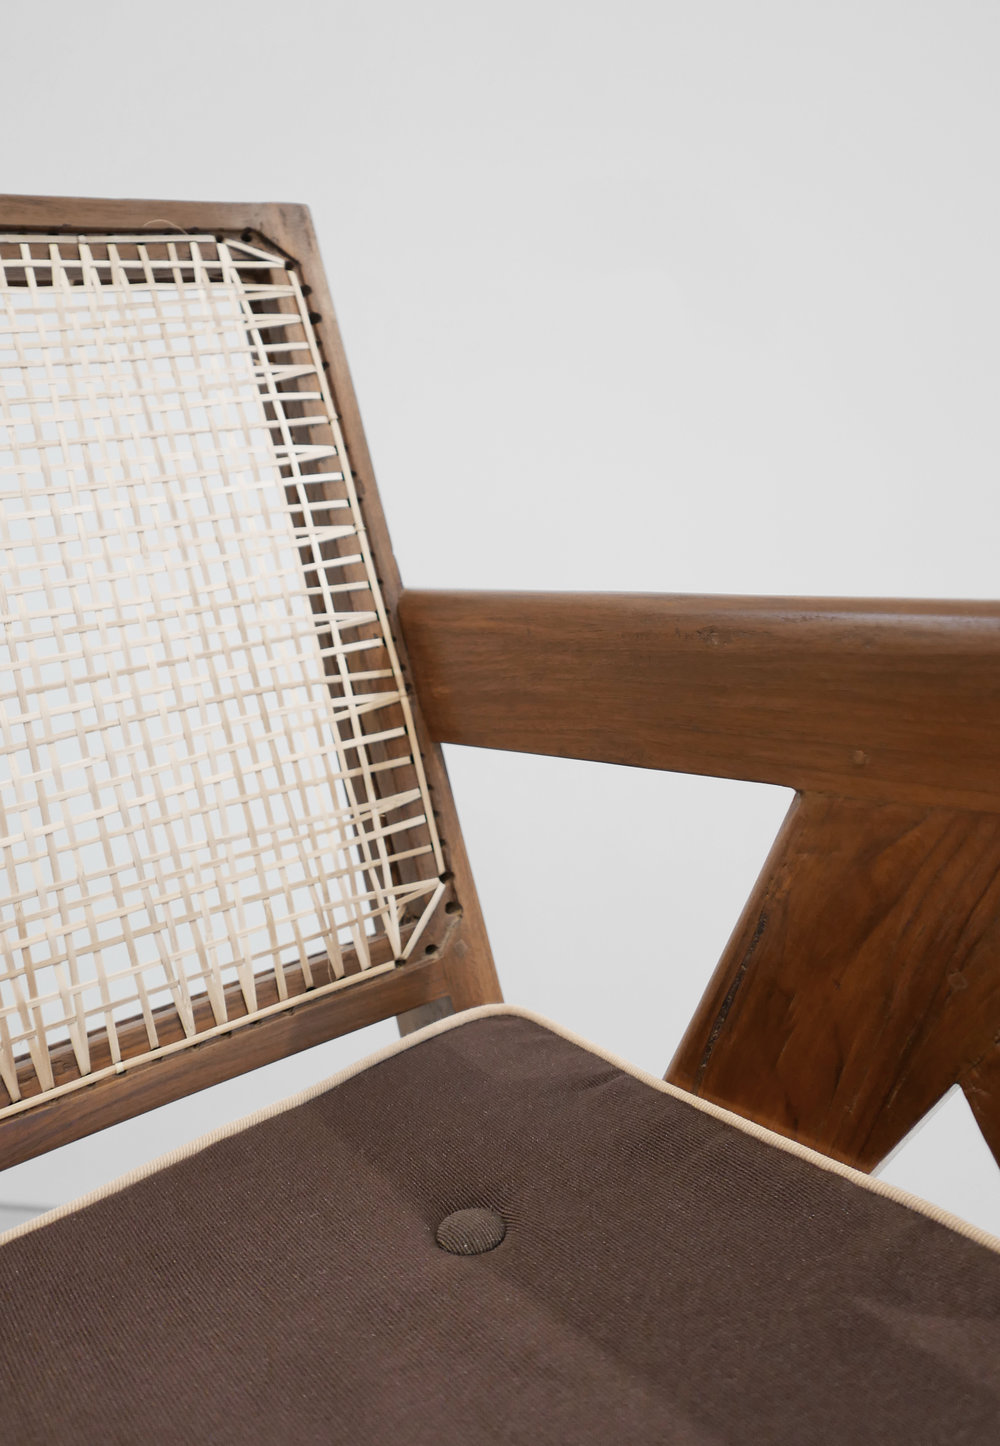 Pierre Jeanneret, Low lounge chair, model PJ-SI-29-A, c. 1955, teak, cane, 24.5H x 20.5W x 29.5D inches_7.jpg